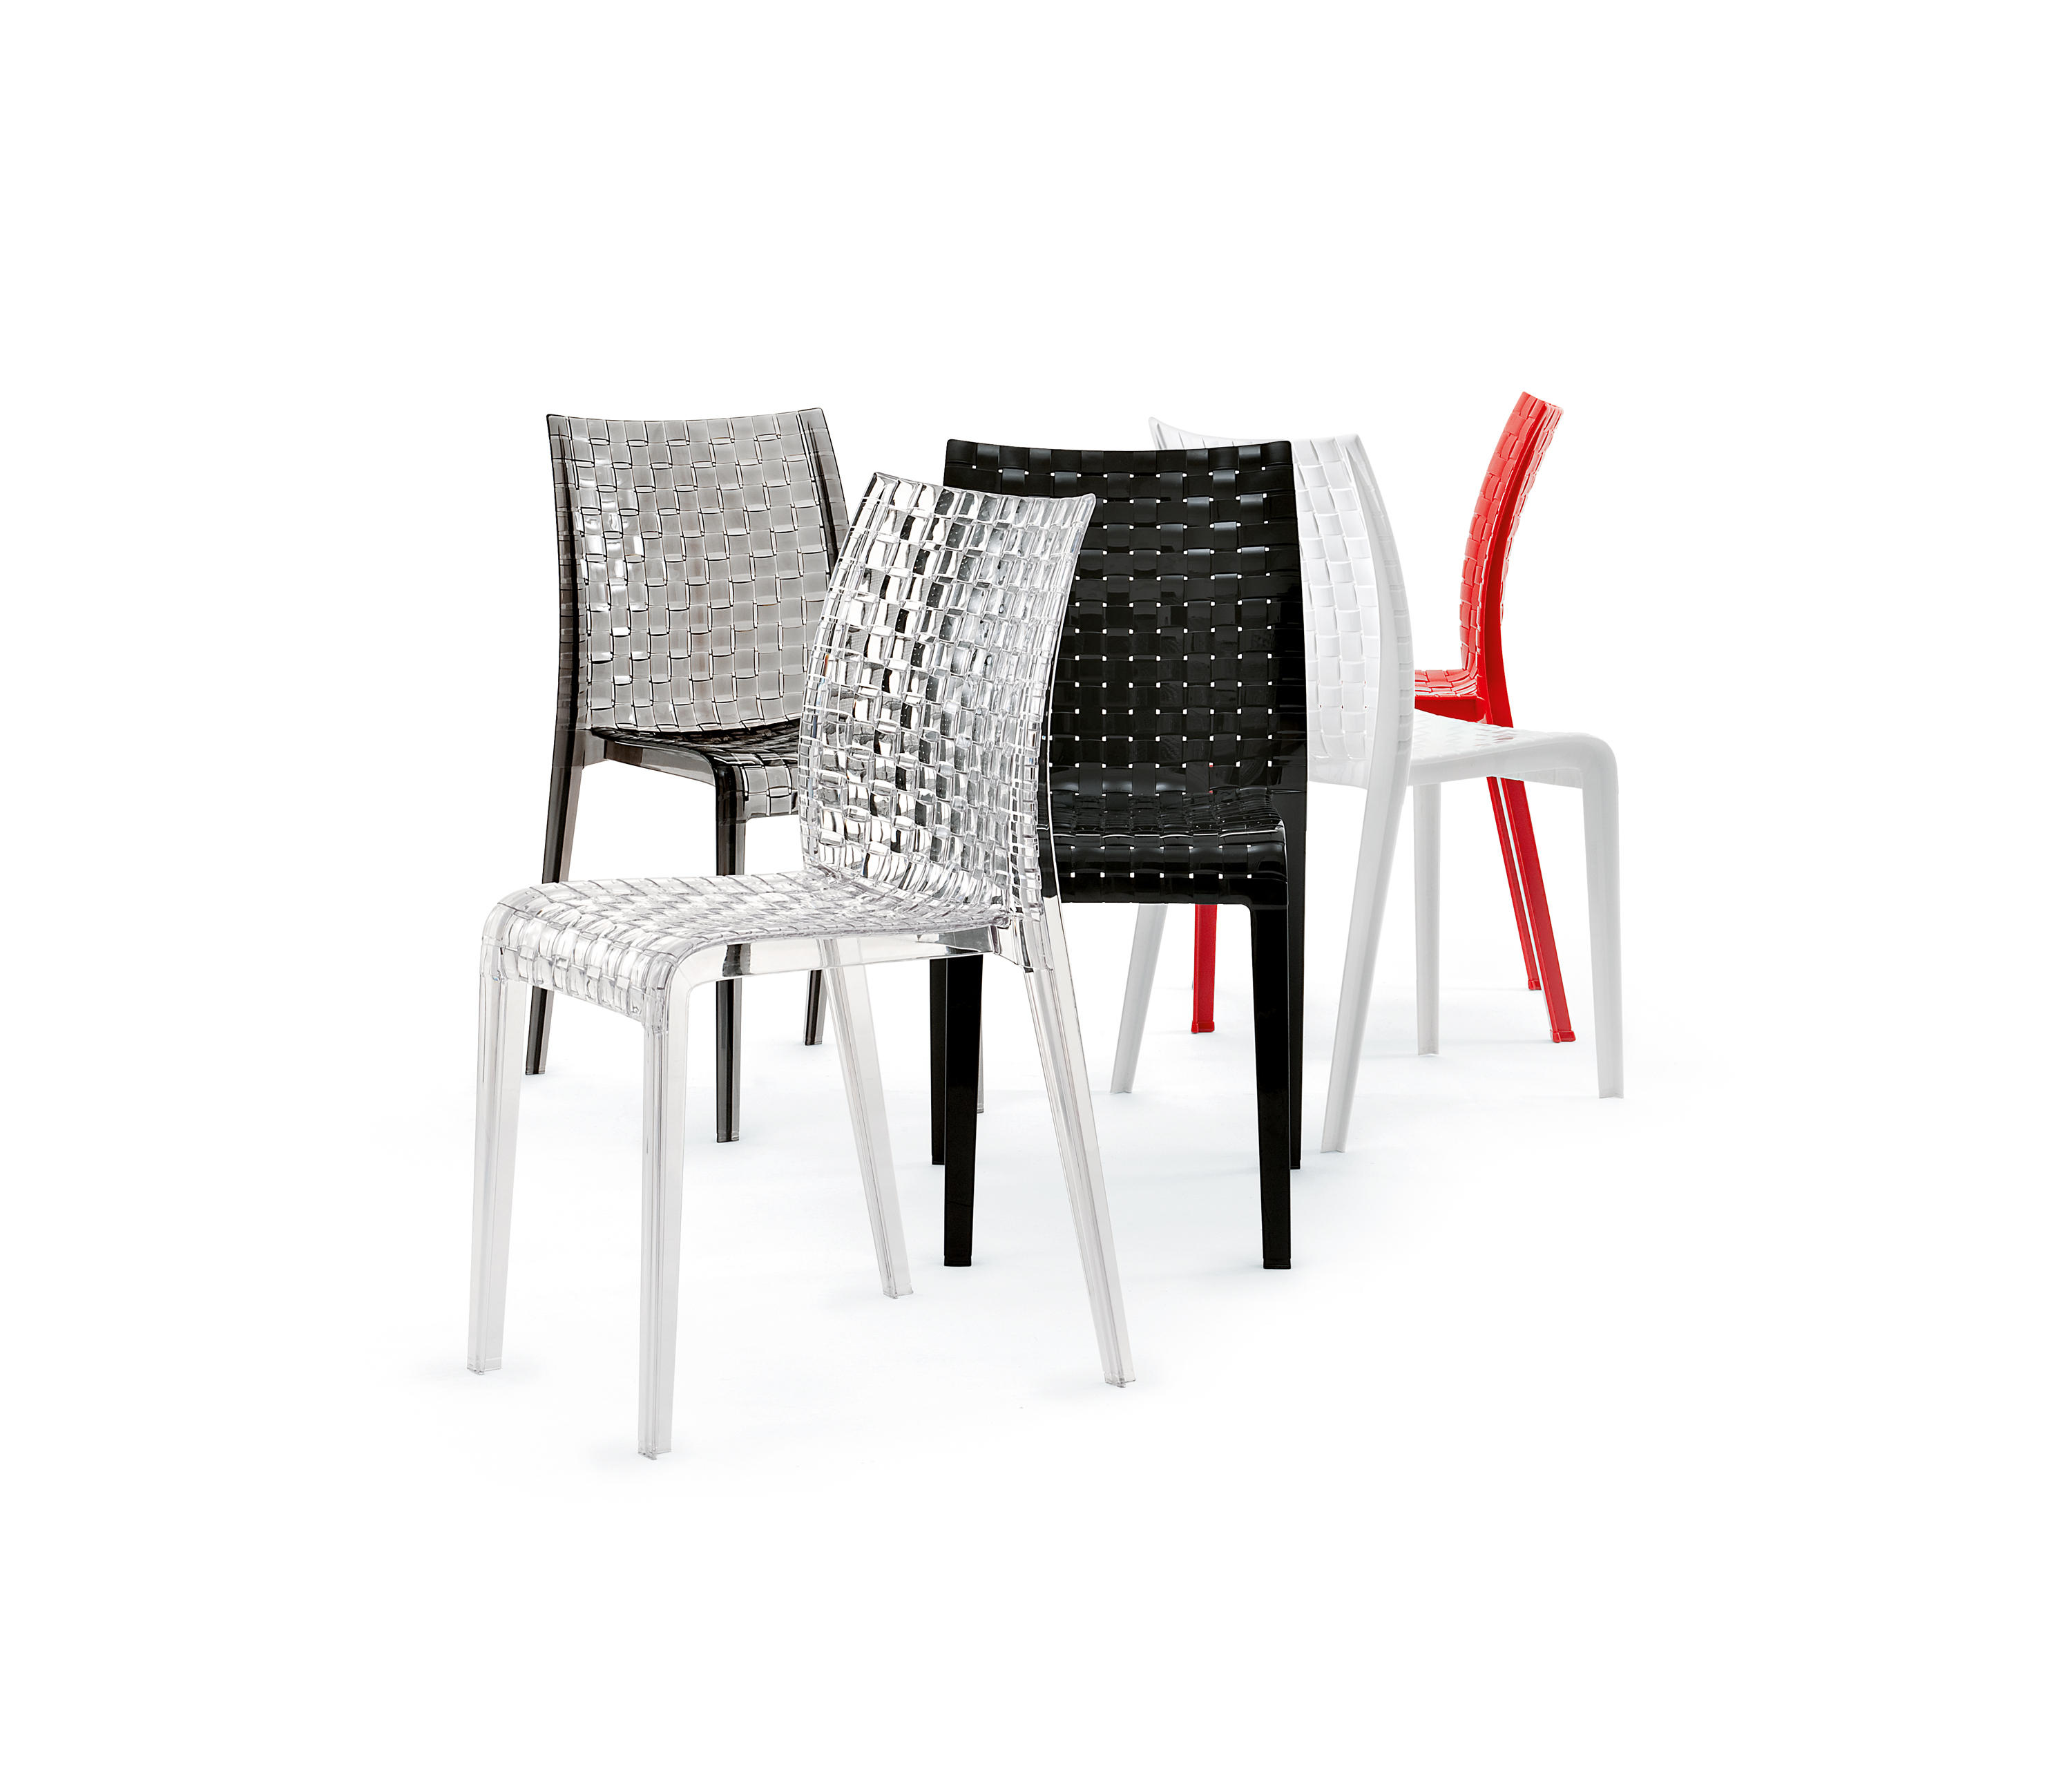 ami ami  multipurpose chairs from kartell  architonic -  ami ami by kartell  multipurpose chairs